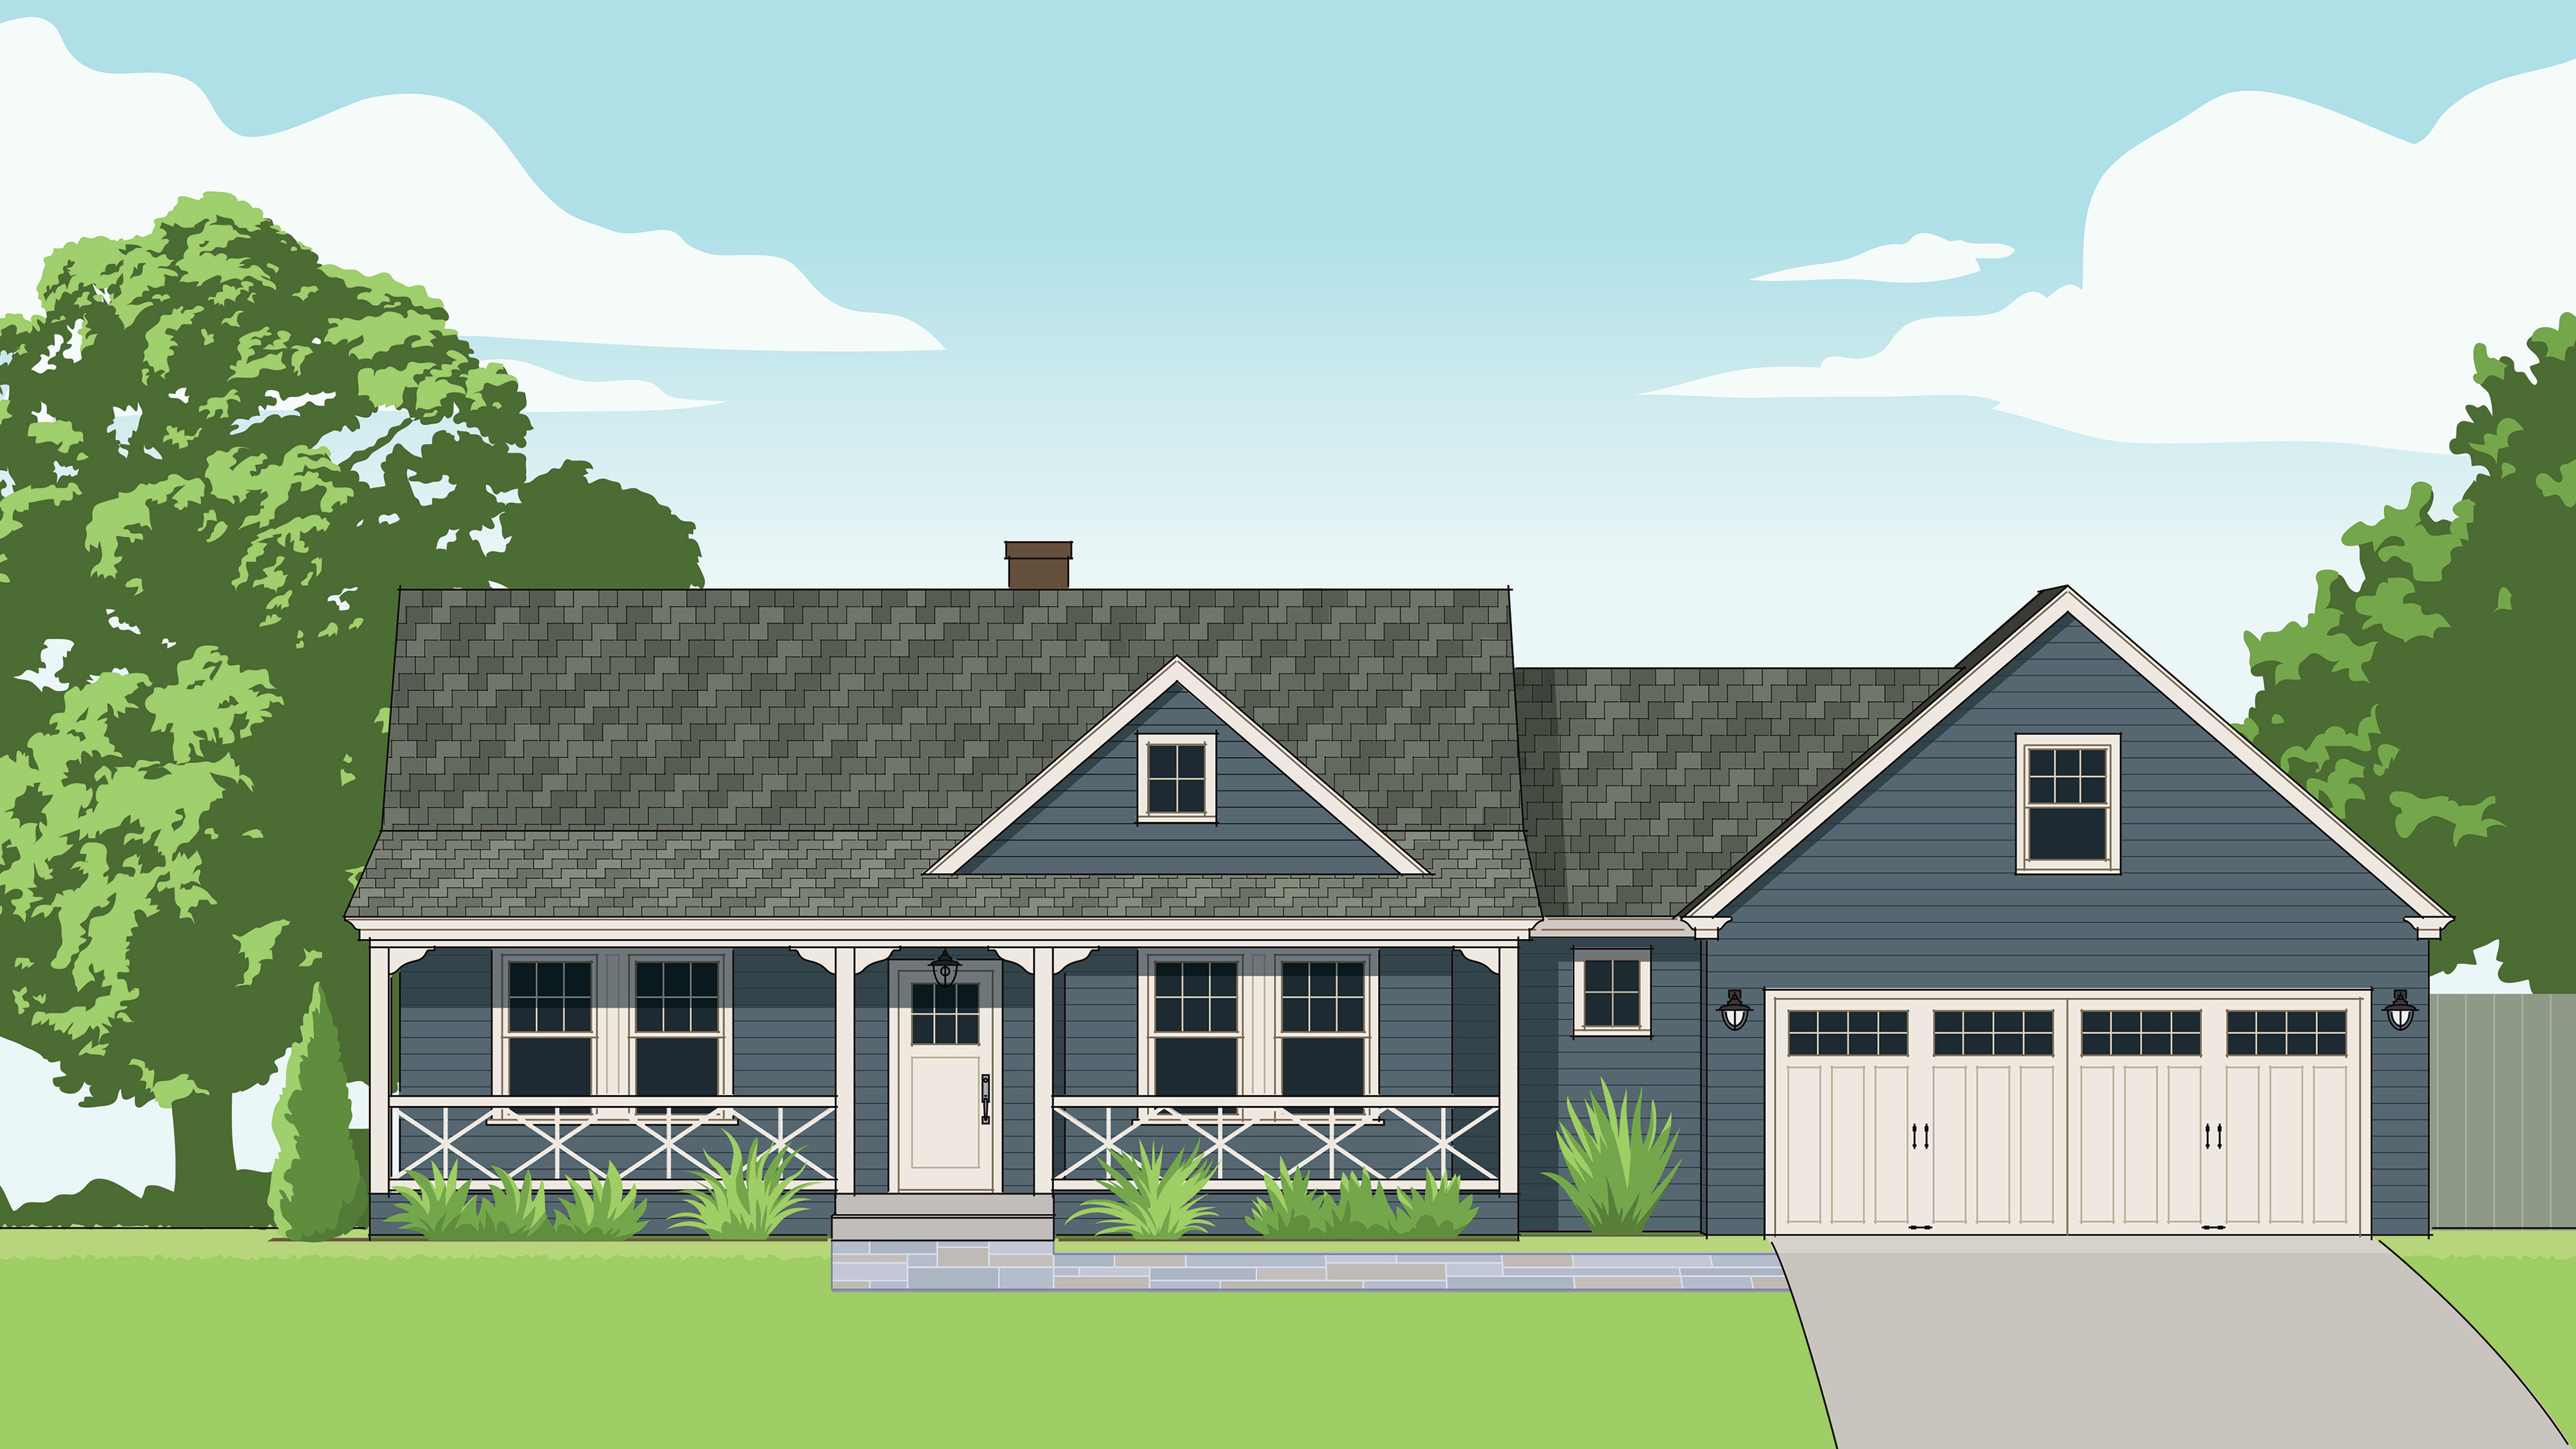 Fall 2021 Curb Appeal, 1950s Cape remodel illustration